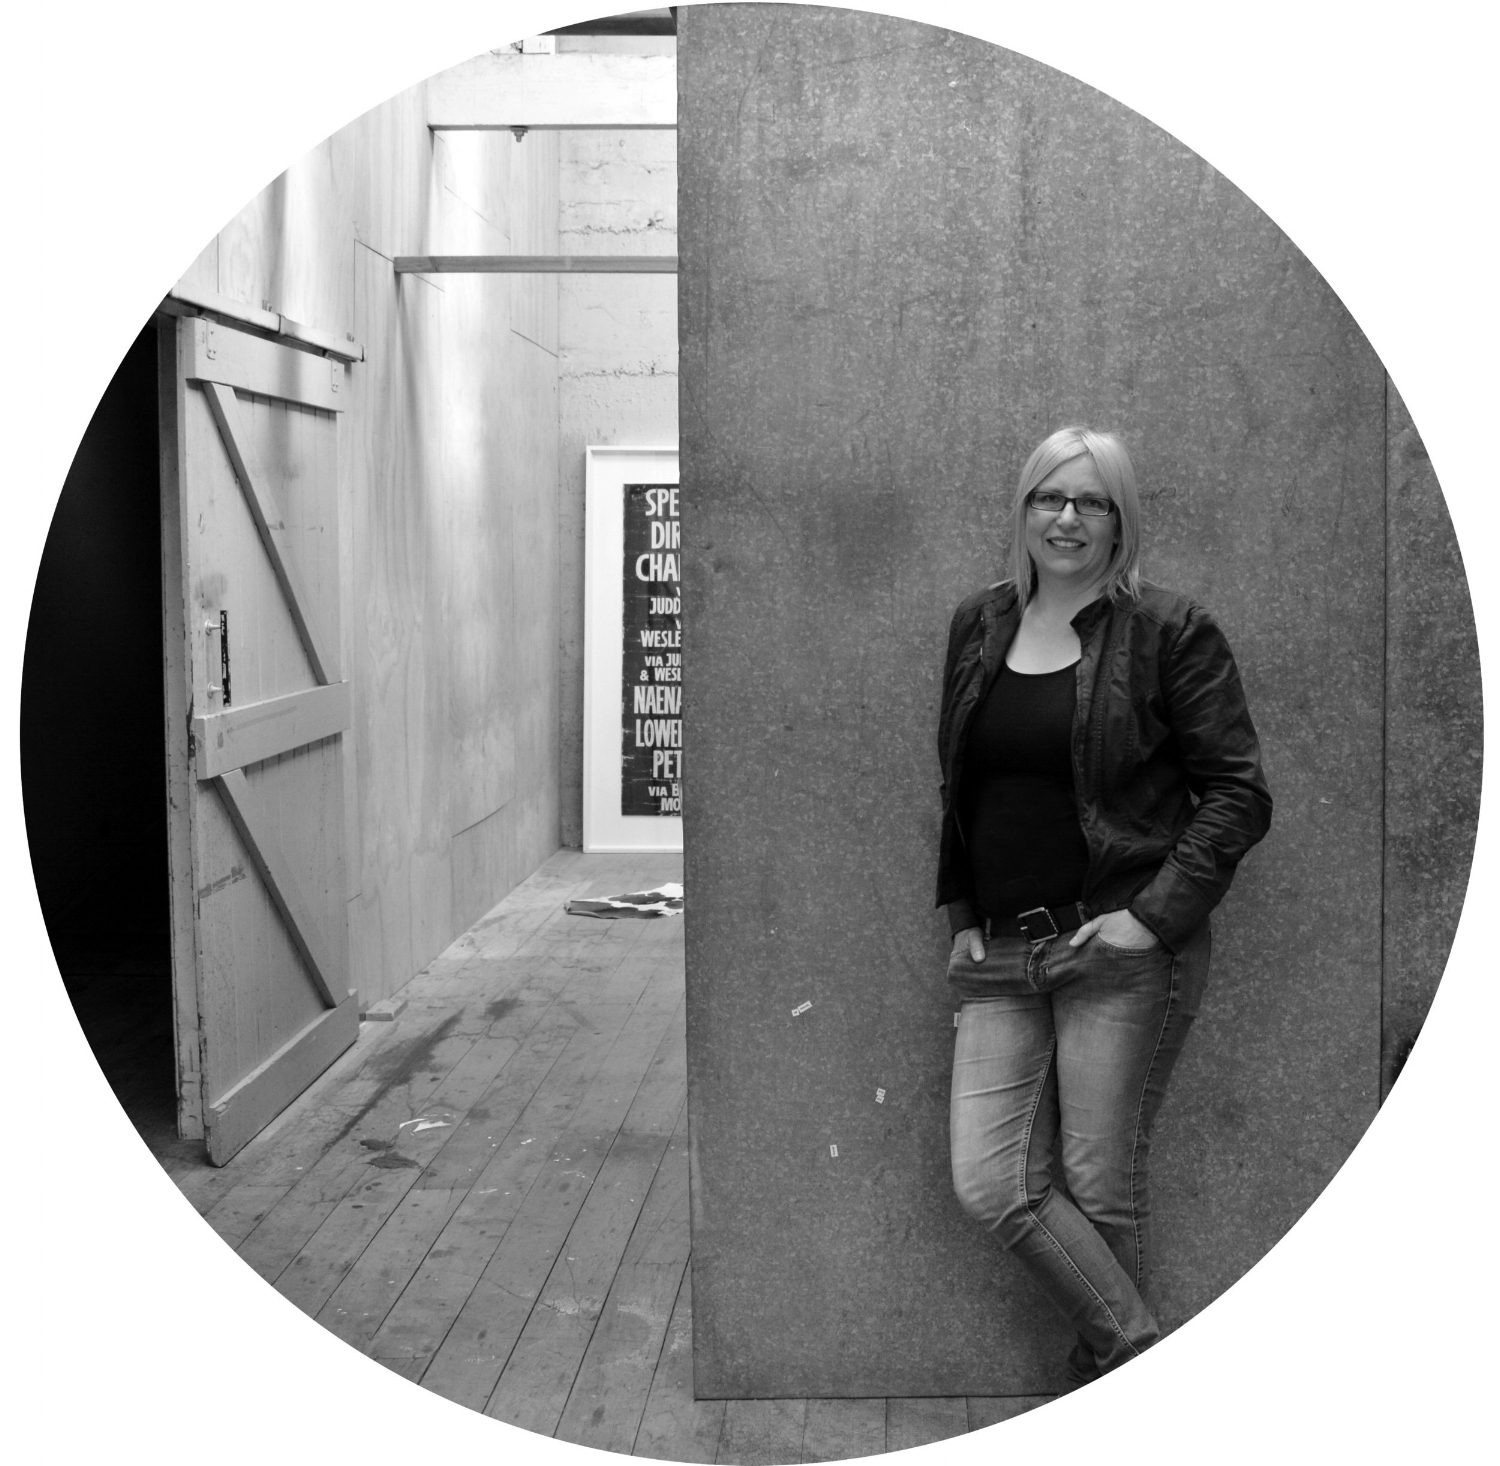 Sally Woods is the founding Principal of Unit7 Architects. Sally graduated from Victoria University with a BArch (Hons) in 1997 which included a student exchange to the University of California, Berkeley. She then moved back to San Francisco, California to work for Holt Hinshaw Architects where she contributed to retail and high end residential projects while organising the office parties. On returning to NZ Sally worked at Athfield Architects on a variety of projects including projects for Victoria University, the National Library and The Dowse in Lower Hutt. She went on to teach at Victoria in the Interior Design discipline before returning to Athfields in 2007. Sally became a registered architect in 2006 and established Unit7 Architects in 2010.